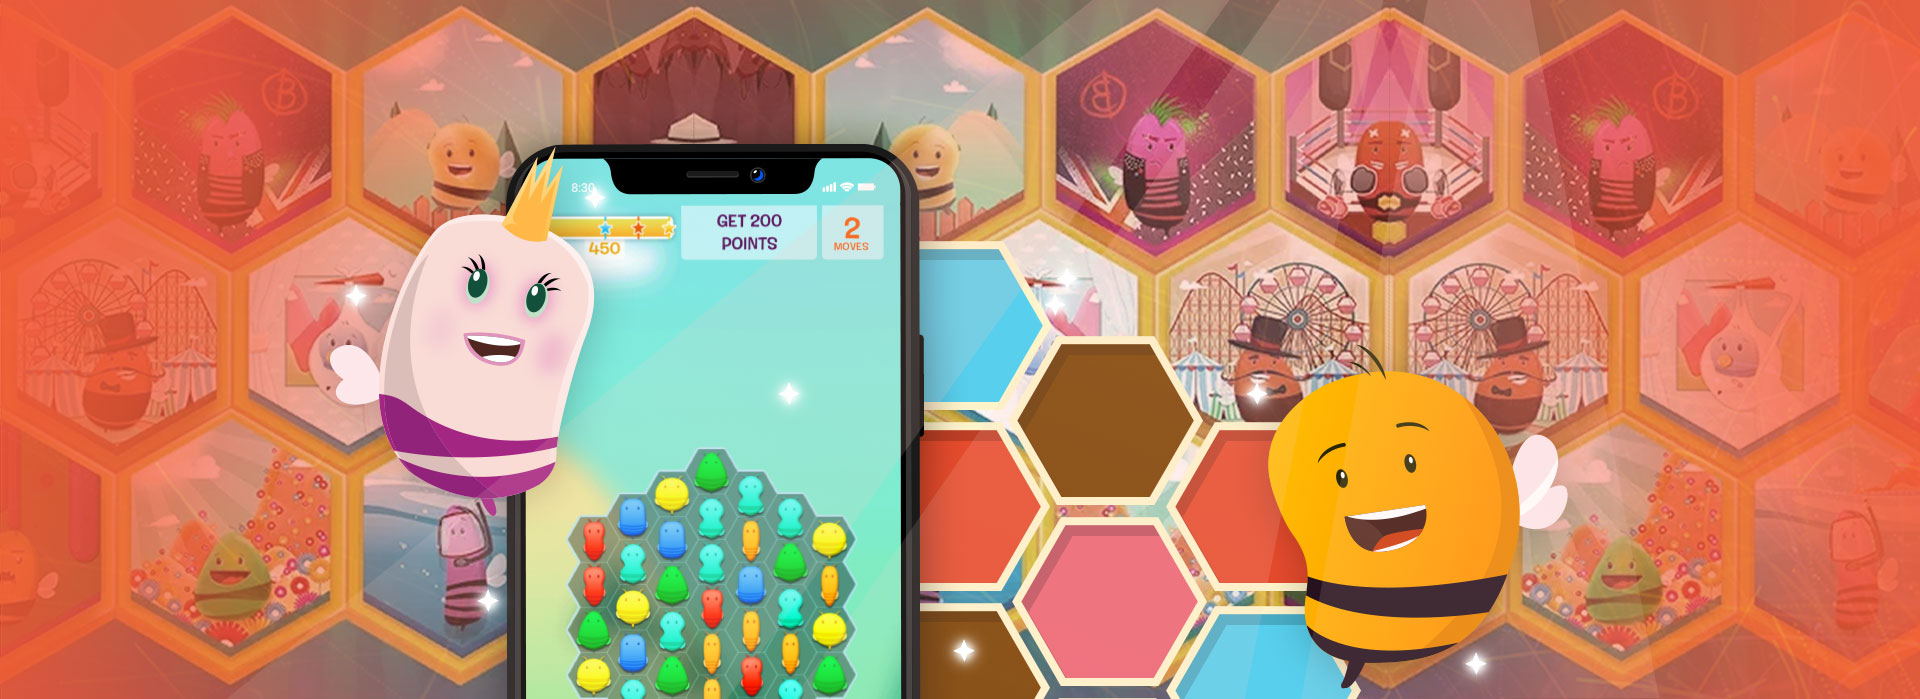 disco bees game points